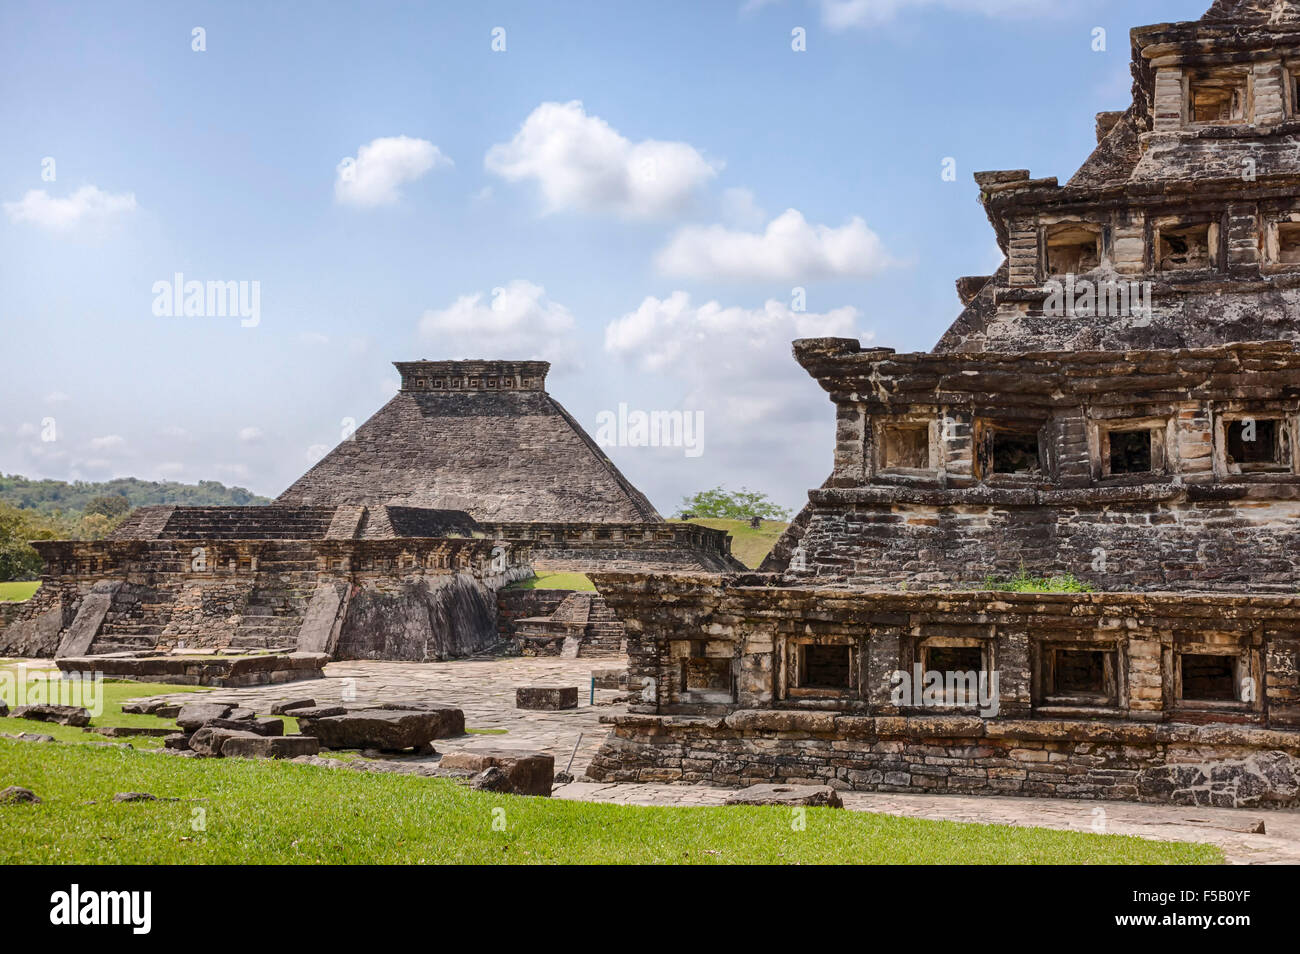 Building 5 in the distance and the Niches Pyramid at the Tajin, Veracruz ruins in Mexico. - Stock Image